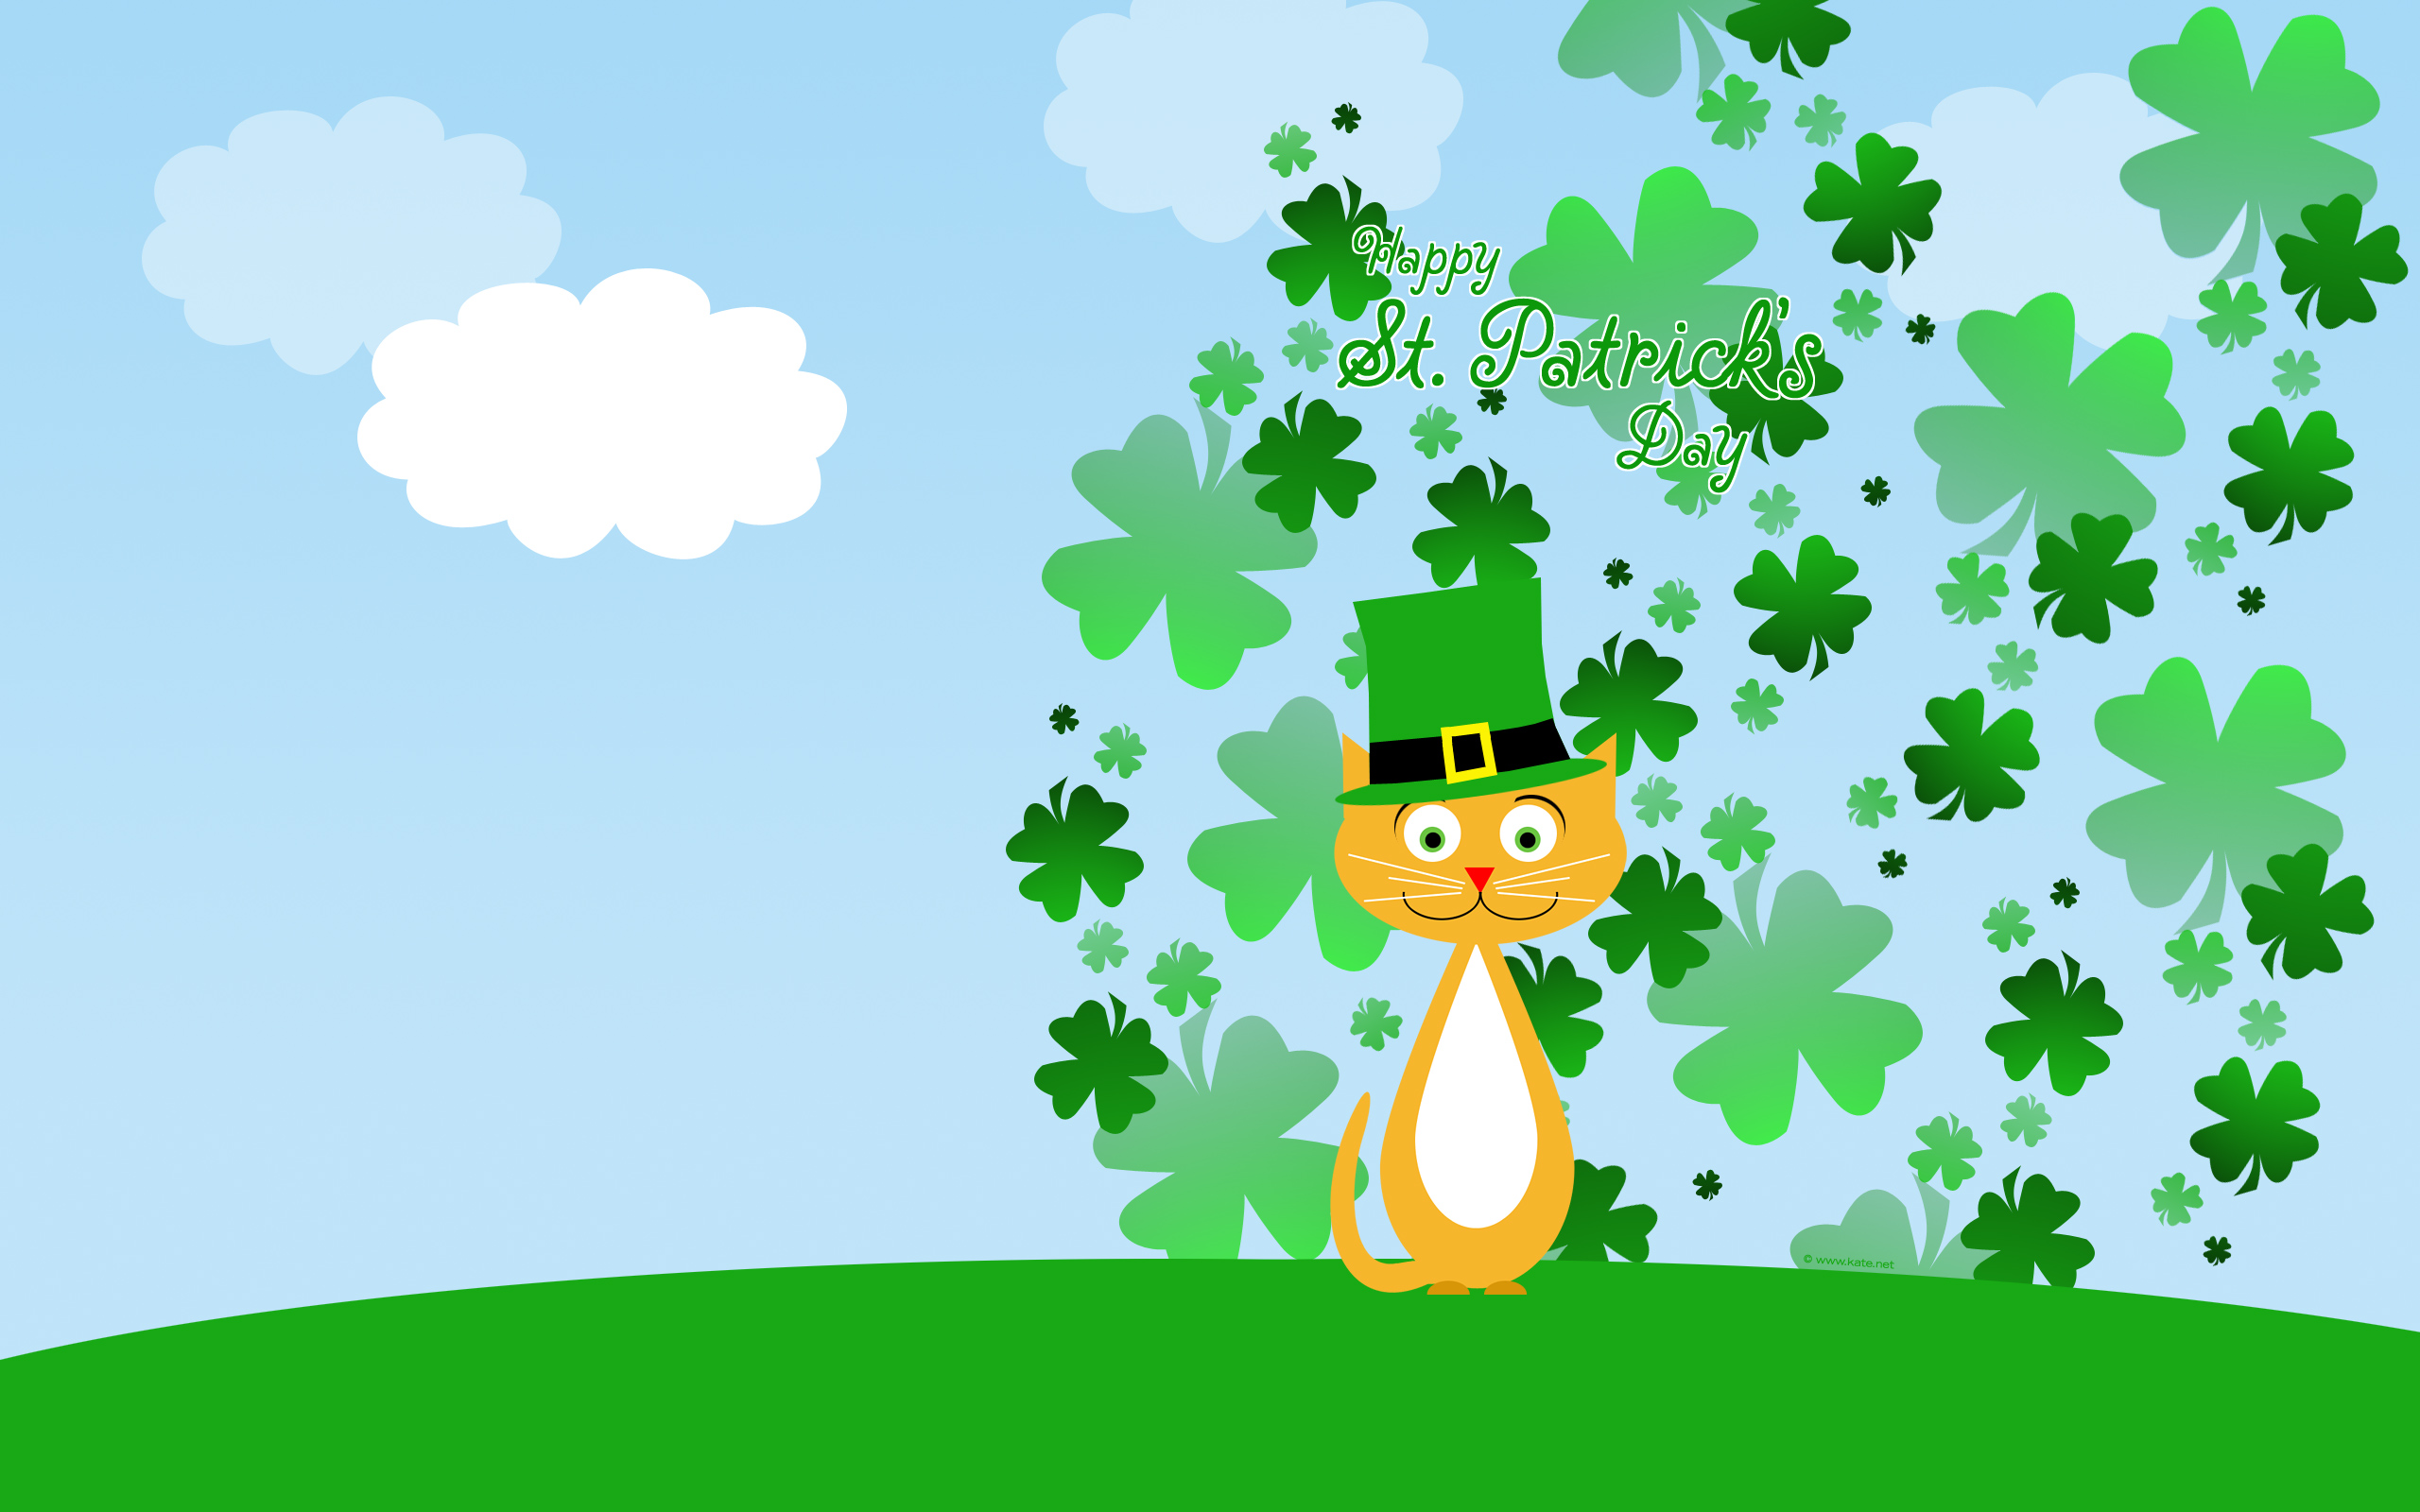 St Patricks Day Wallpapers HD 2560x1600